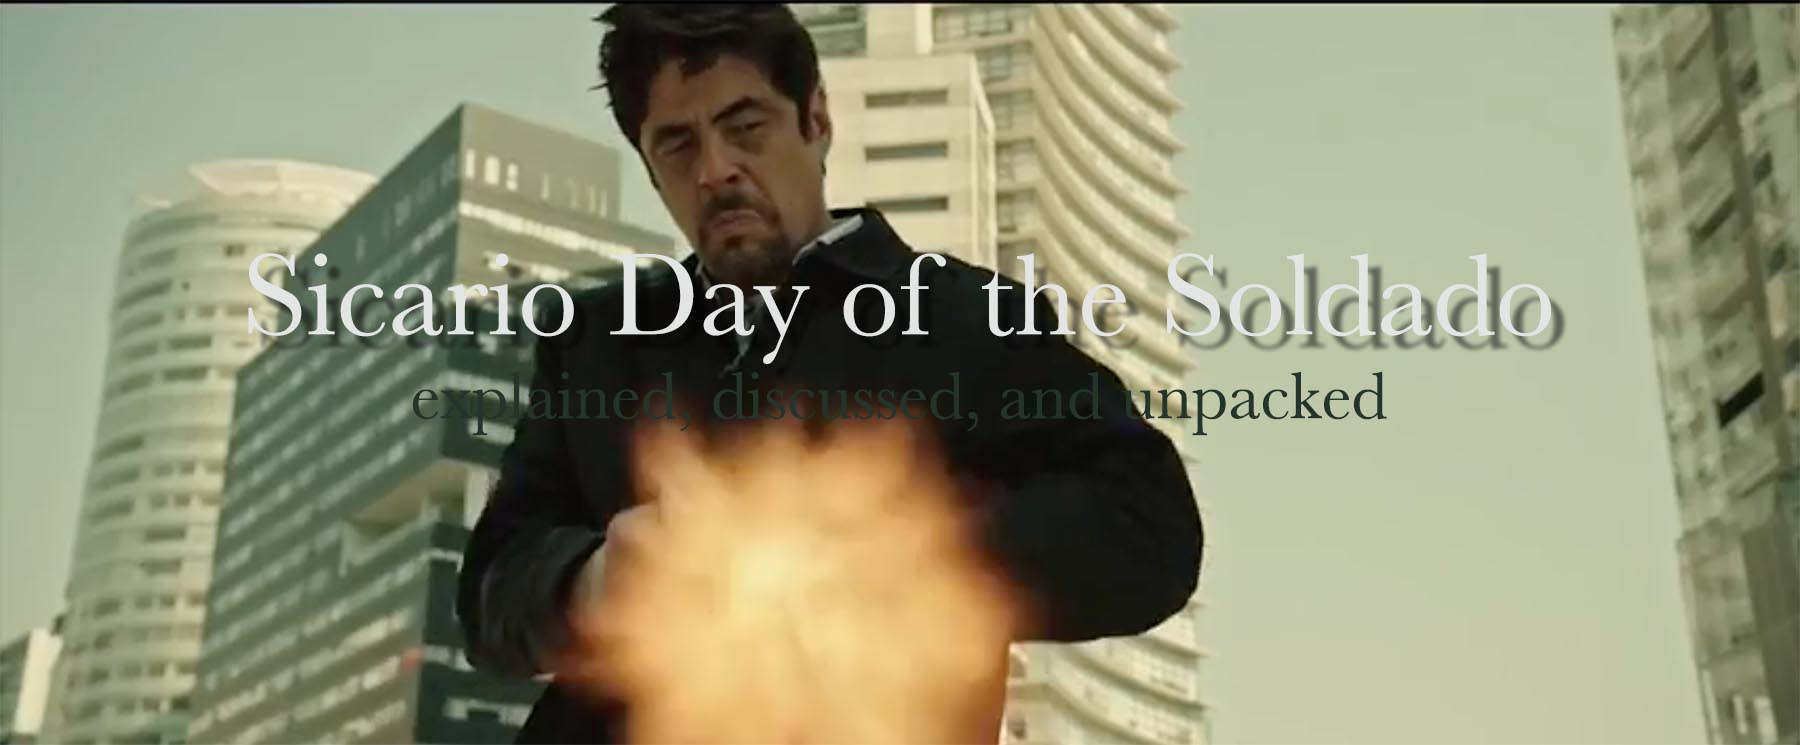 Sicario Day of the Soldado Explained and Reviewed